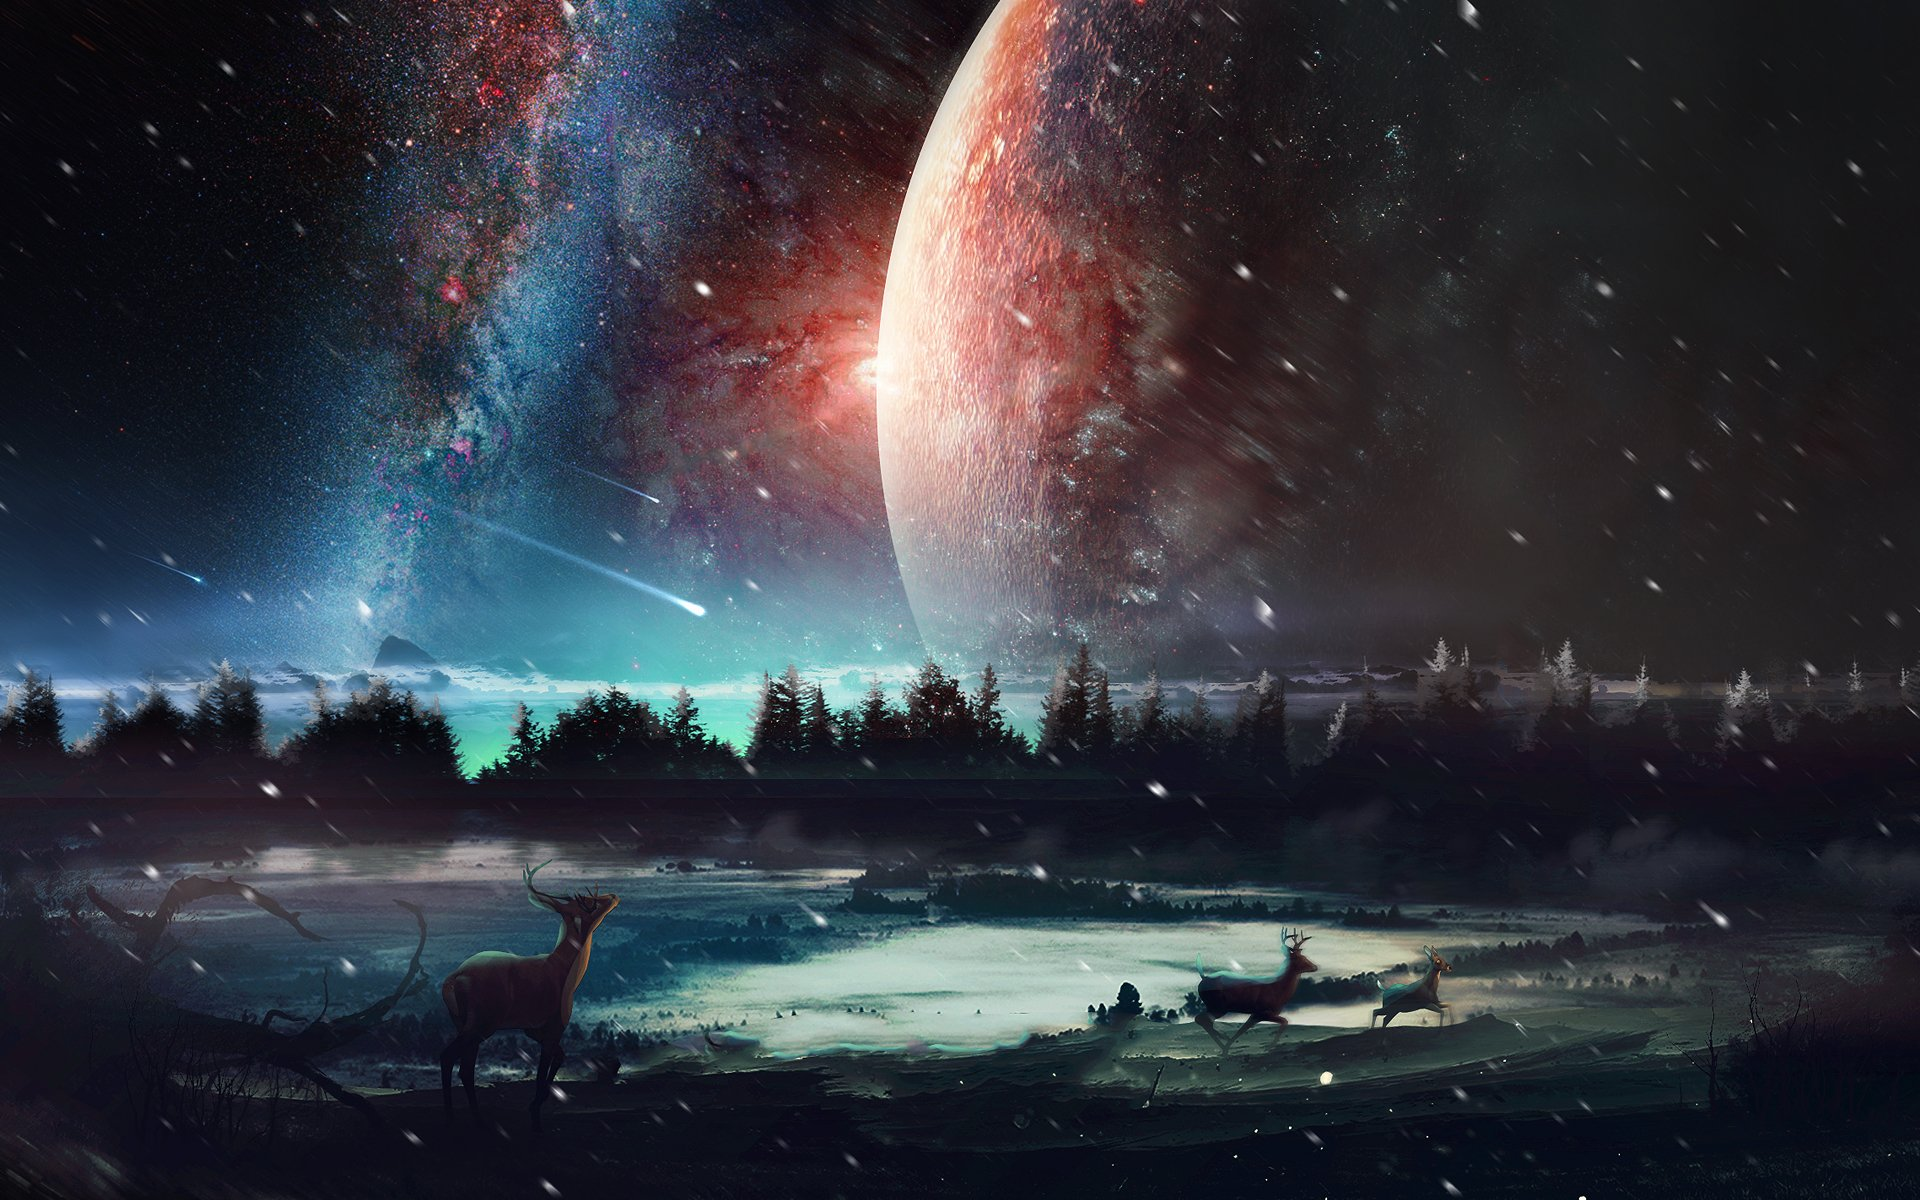 Universe Scenery Wallpapers HD Wallpapers 1920x1200